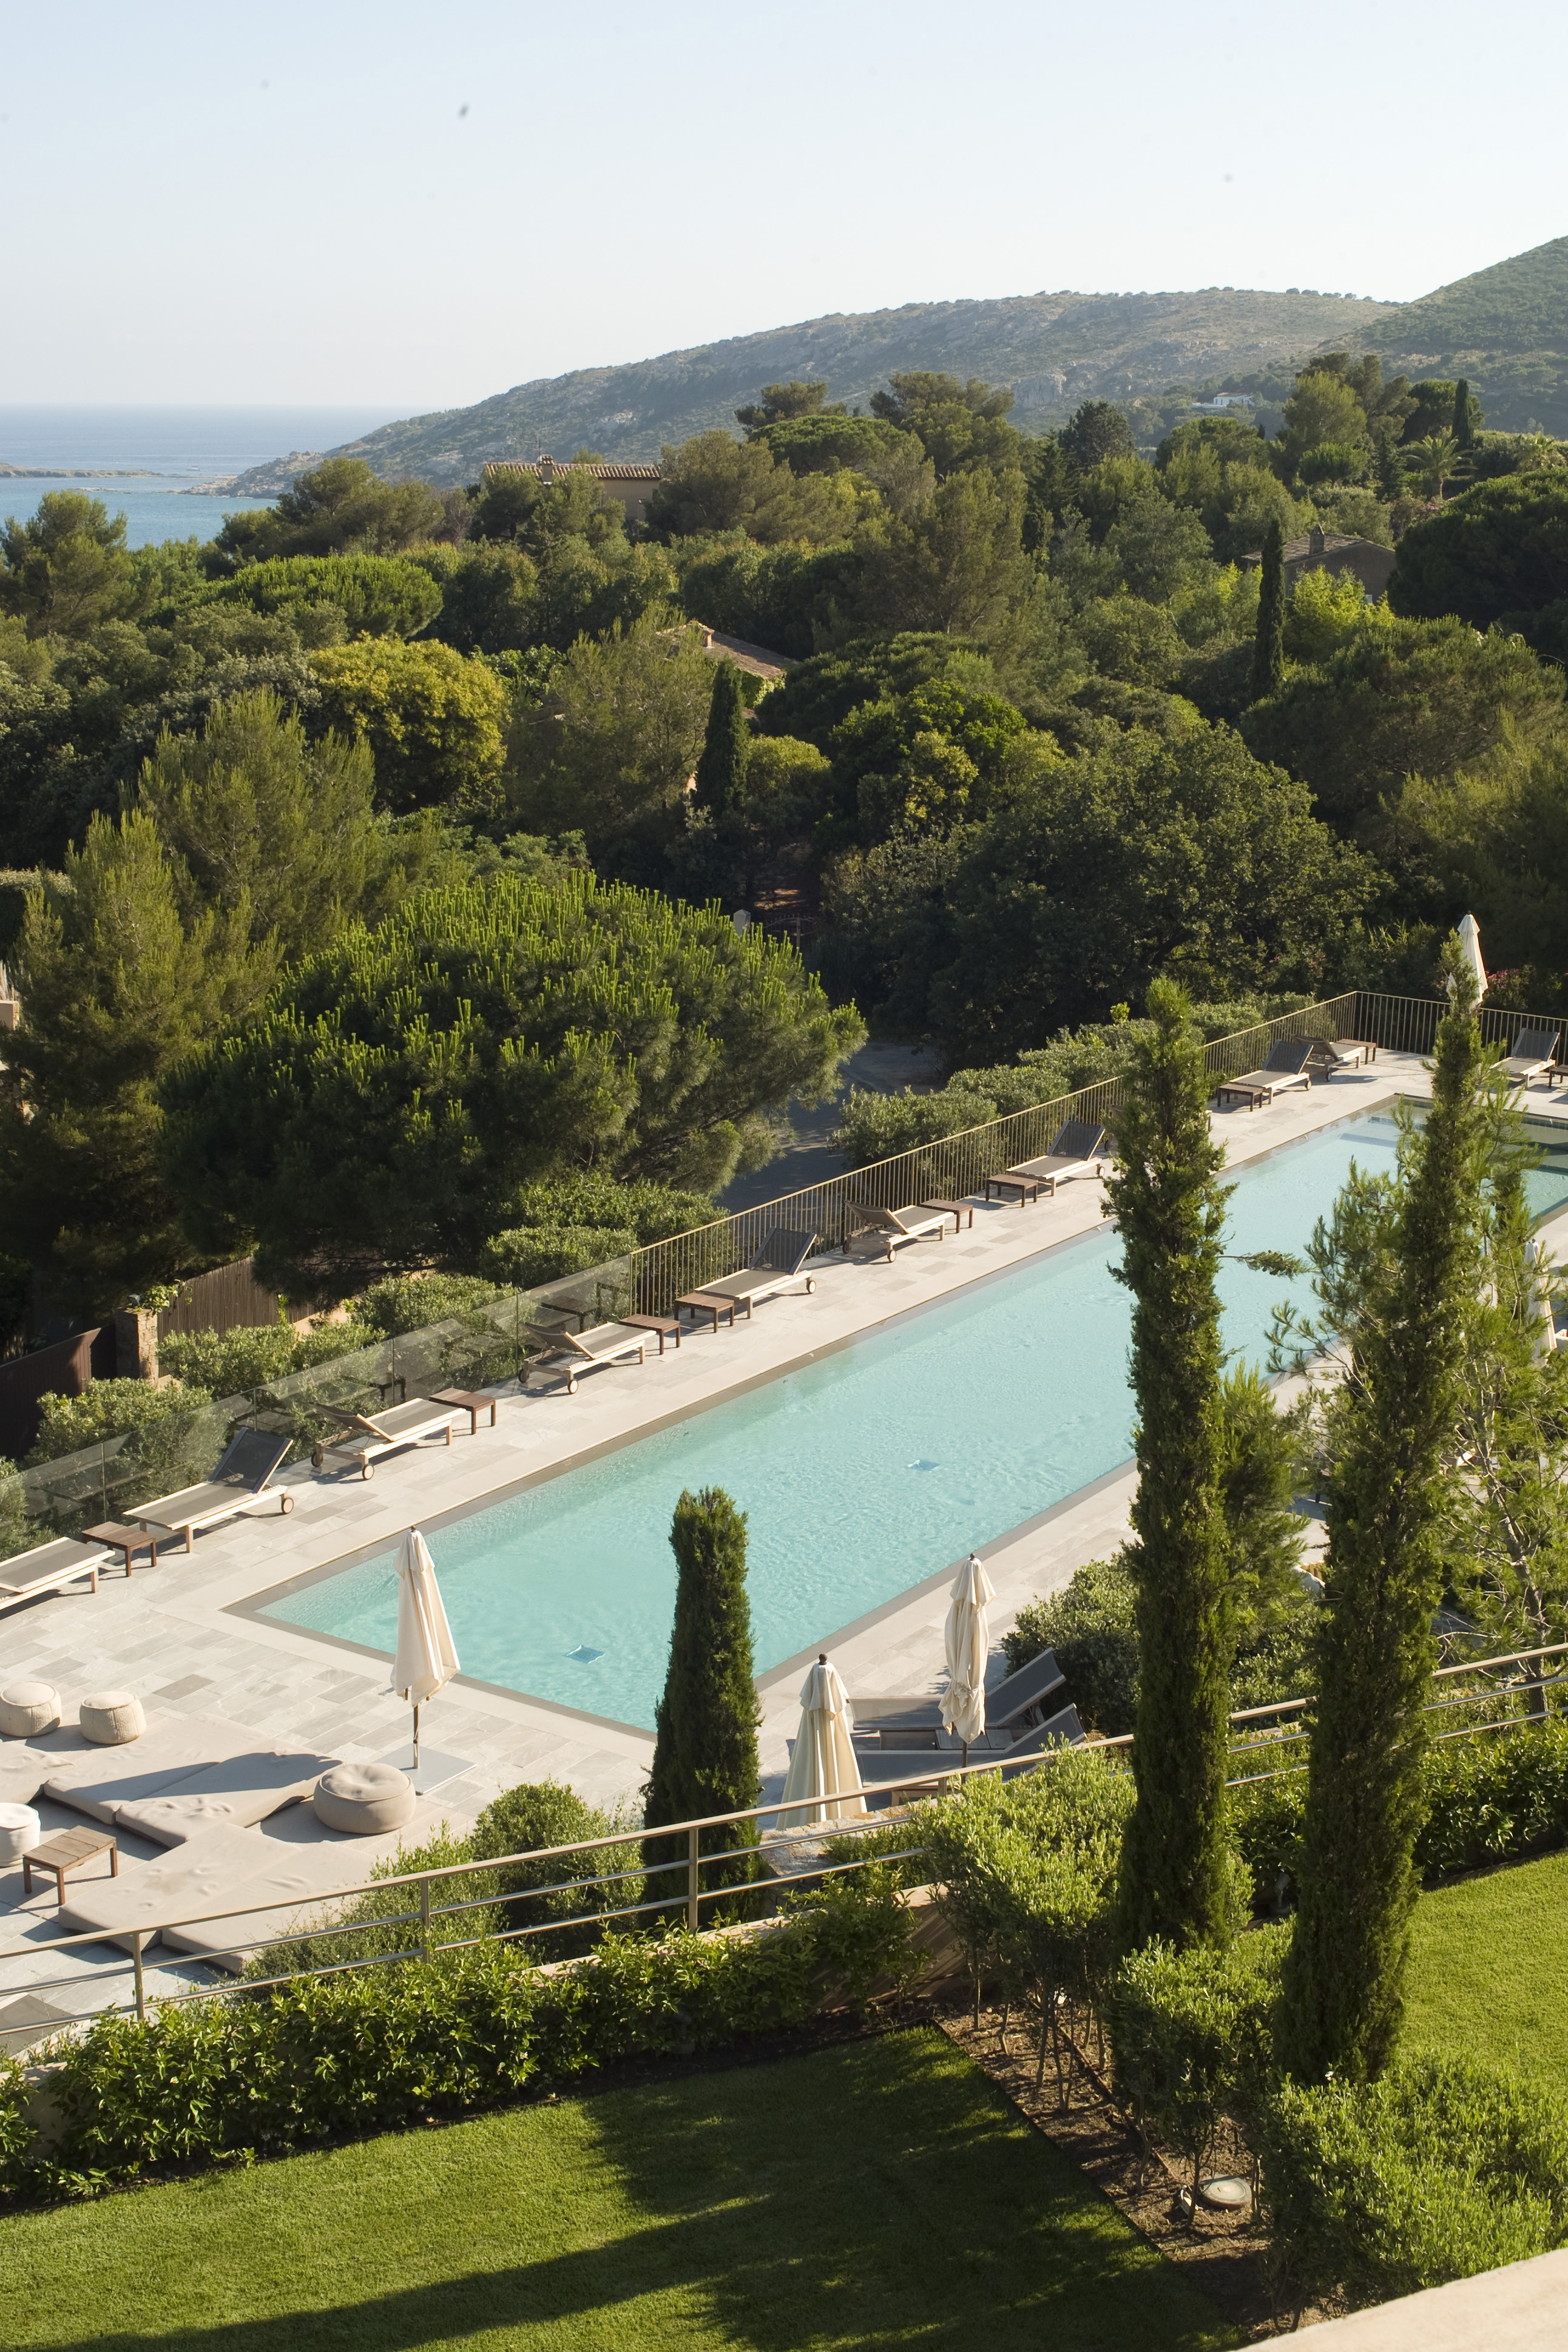 la reserve ; ramatuelle ; saint-tropez ; hotel ; palace ; luxe ; trip ; travel ; holiday ; pool ; hotel luxe ; holidays ; swimming pool ; piscine